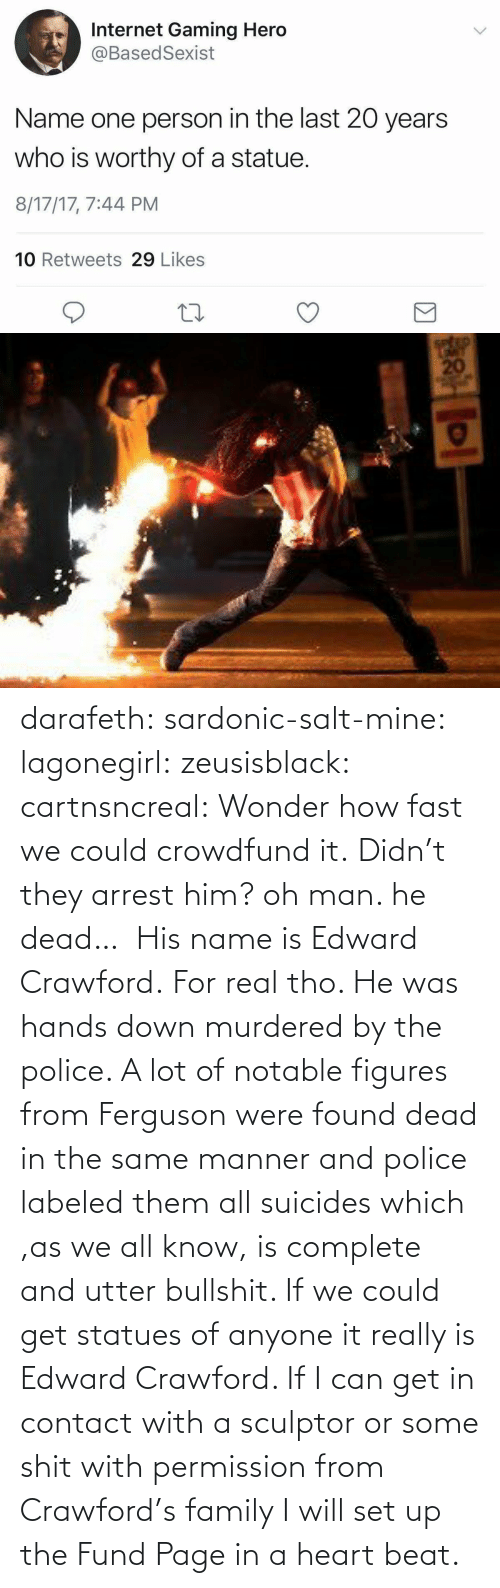 In The: darafeth: sardonic-salt-mine:  lagonegirl:  zeusisblack:  cartnsncreal:   Wonder how fast we could crowdfund it.    Didn't they arrest him?  oh man. he dead…   His name is Edward Crawford.   For real tho. He was hands down murdered by the police. A lot of notable figures from Ferguson were found dead in the same manner and police labeled them all suicides which ,as we all know, is complete and utter bullshit.  If we could get statues of anyone it really is Edward Crawford. If I can get in contact with a sculptor or some shit with permission from Crawford's family I will set up the Fund Page in a heart beat.